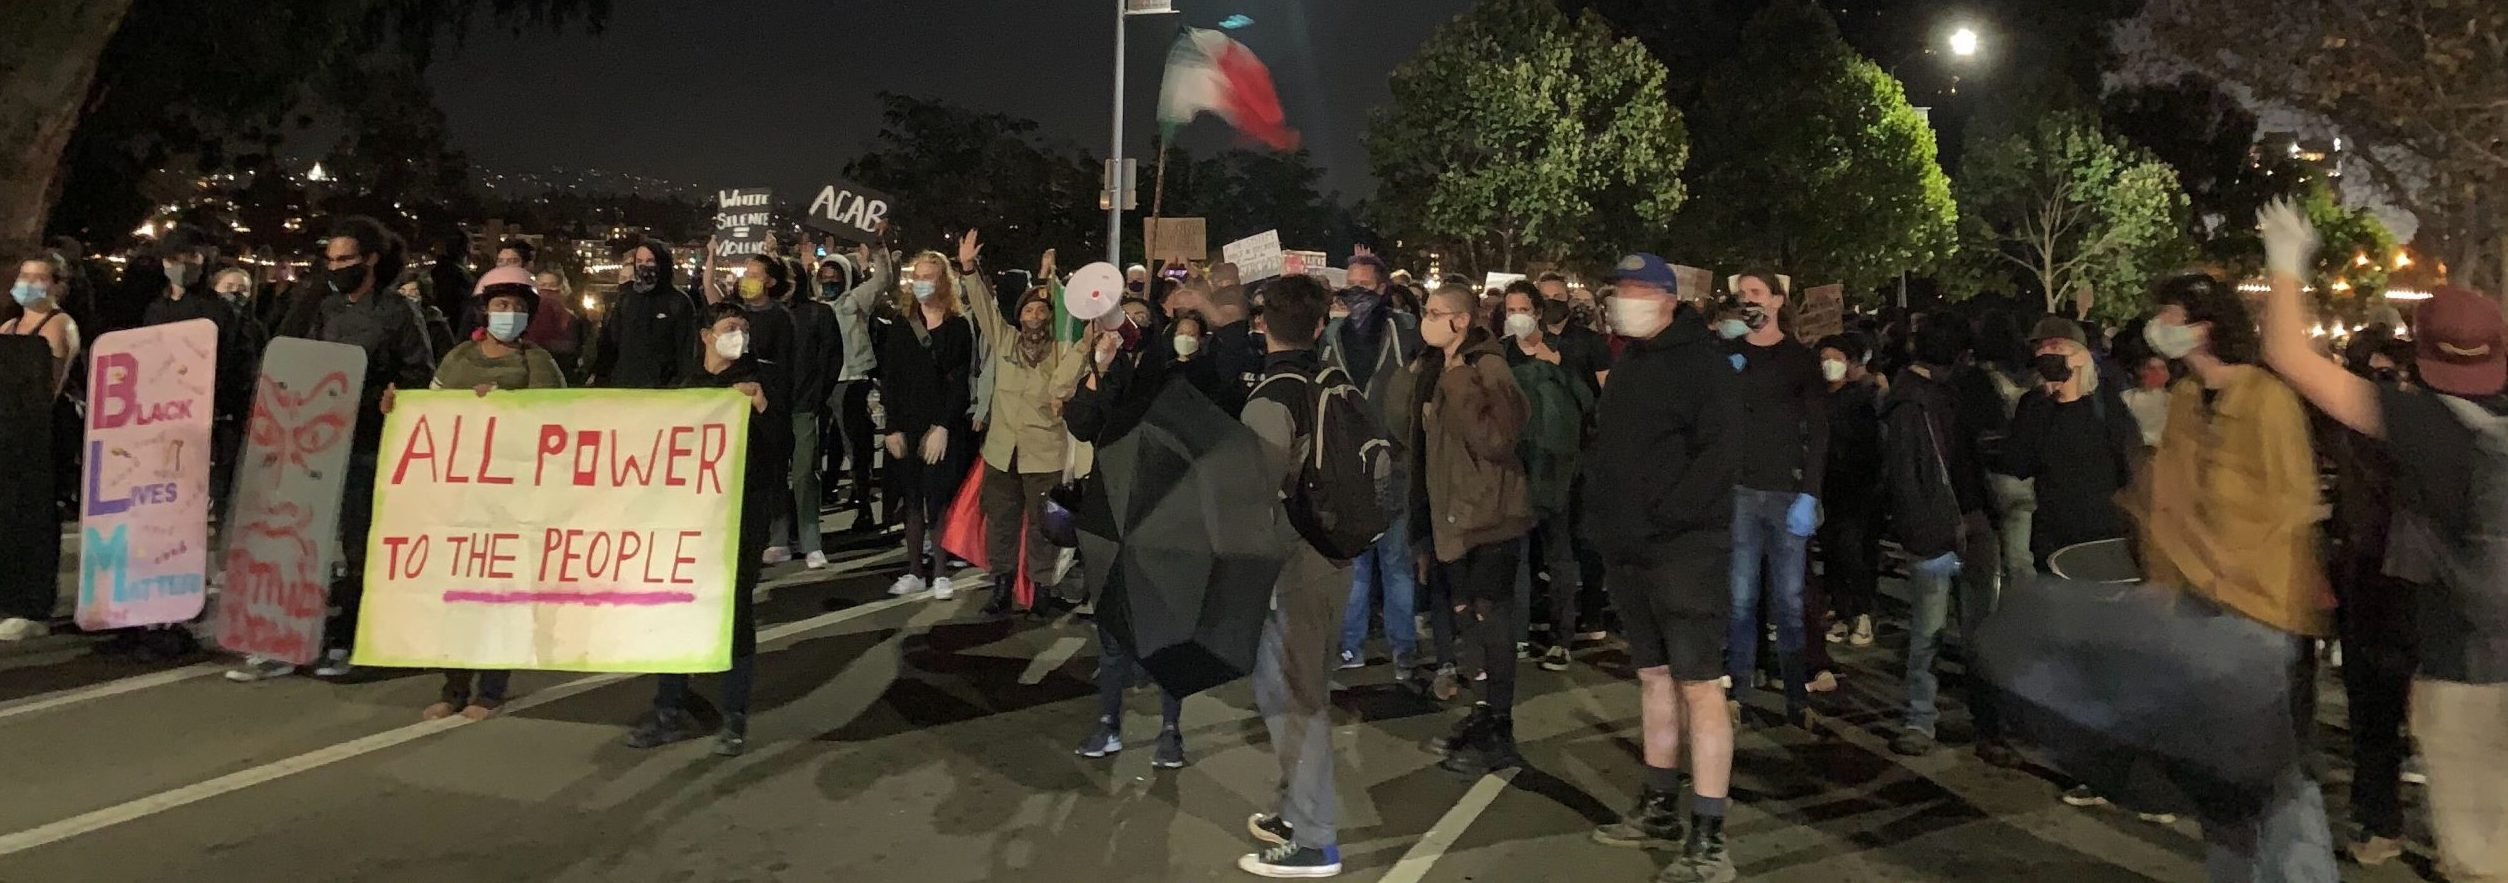 Protest in Oakland